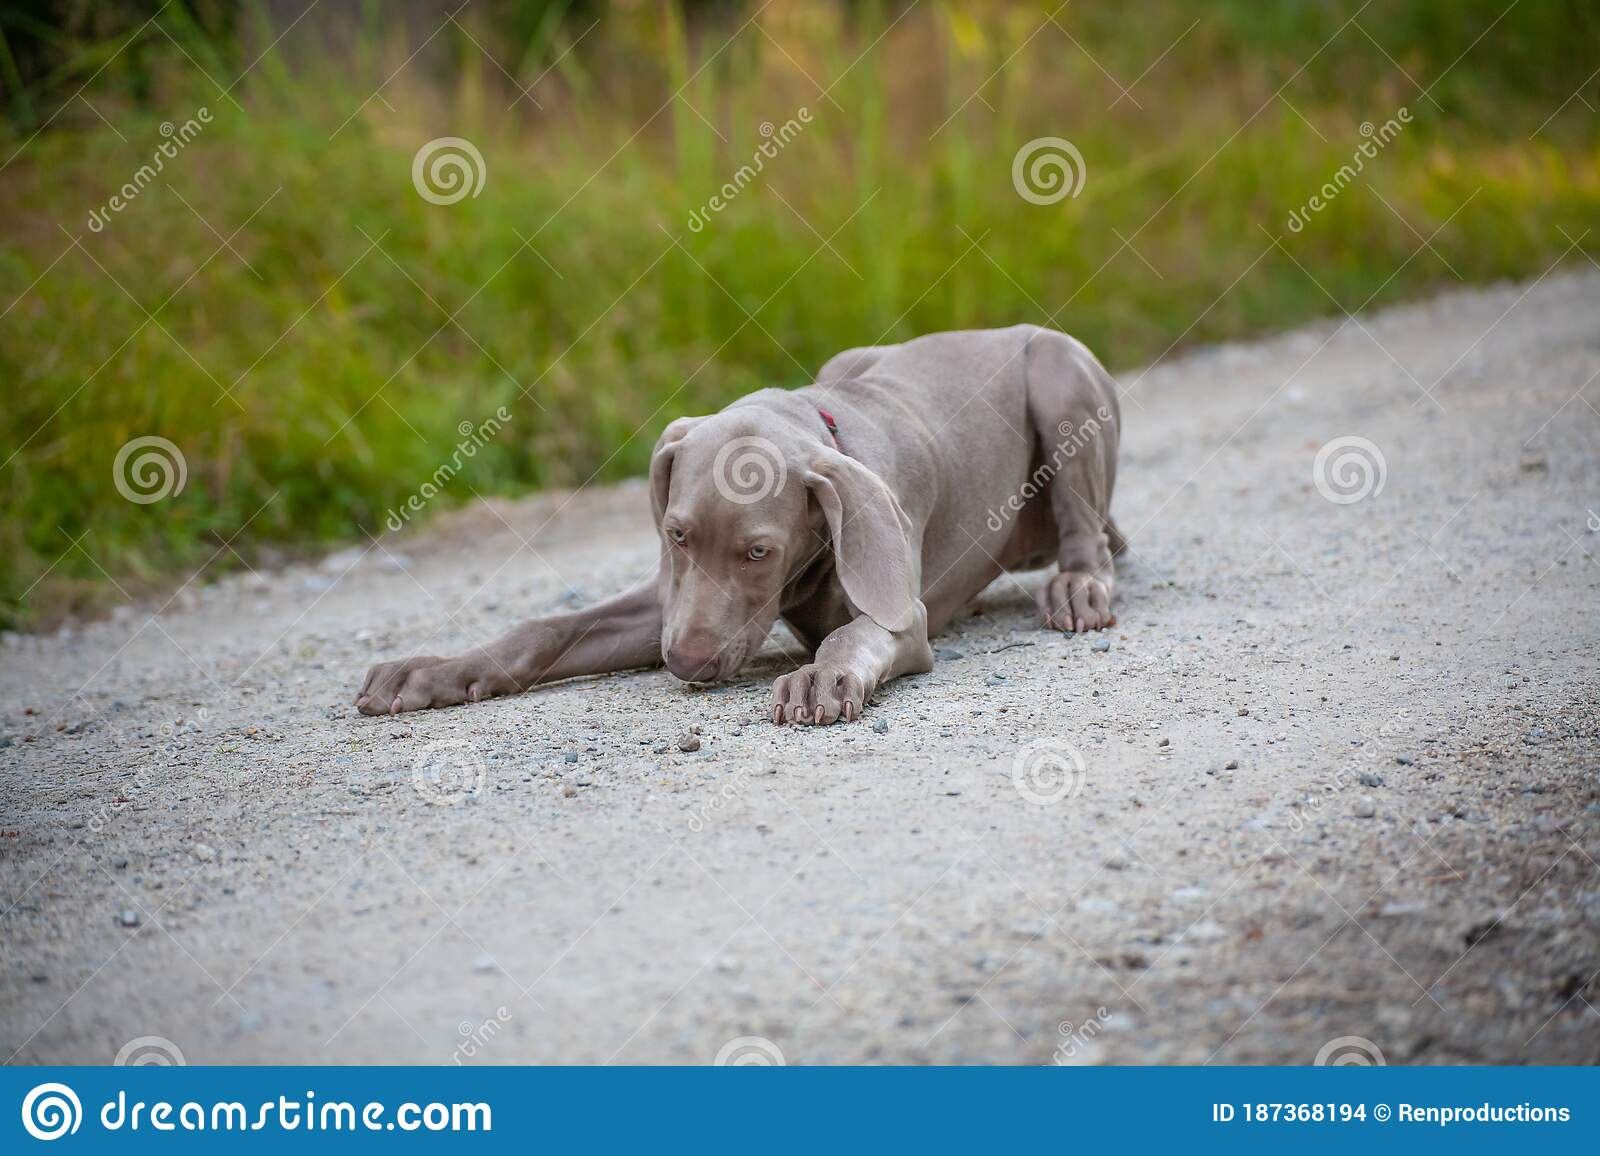 Weimaraner Puppy Takes His First Steps In Training Stock Photo Image Of Ghost Helper 187368194